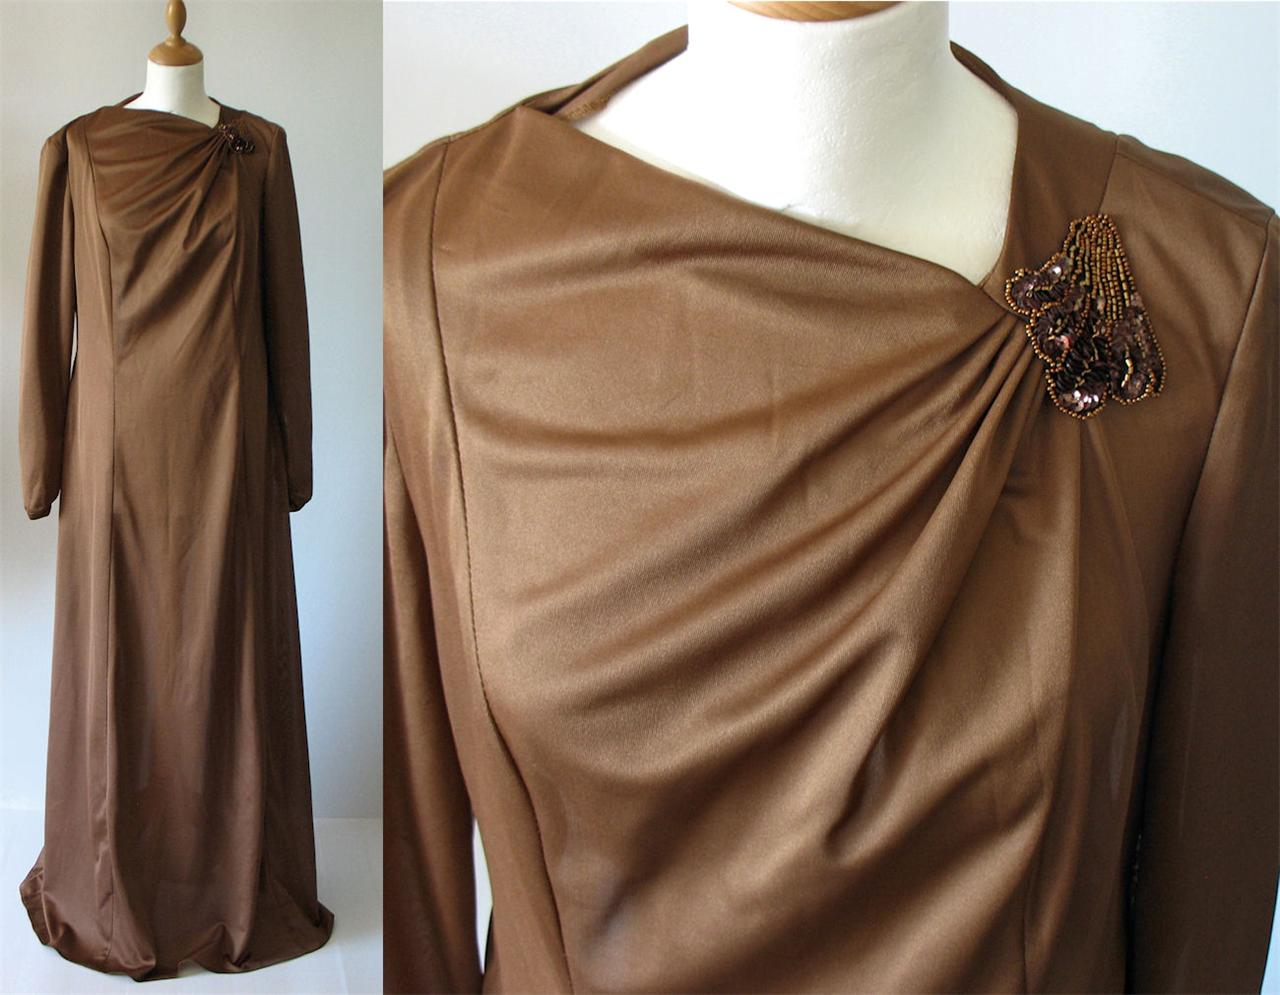 Vintage-Retro-Evening-Ceremony-Wedding-Dress-Long-Maxi-Brown-UK-14